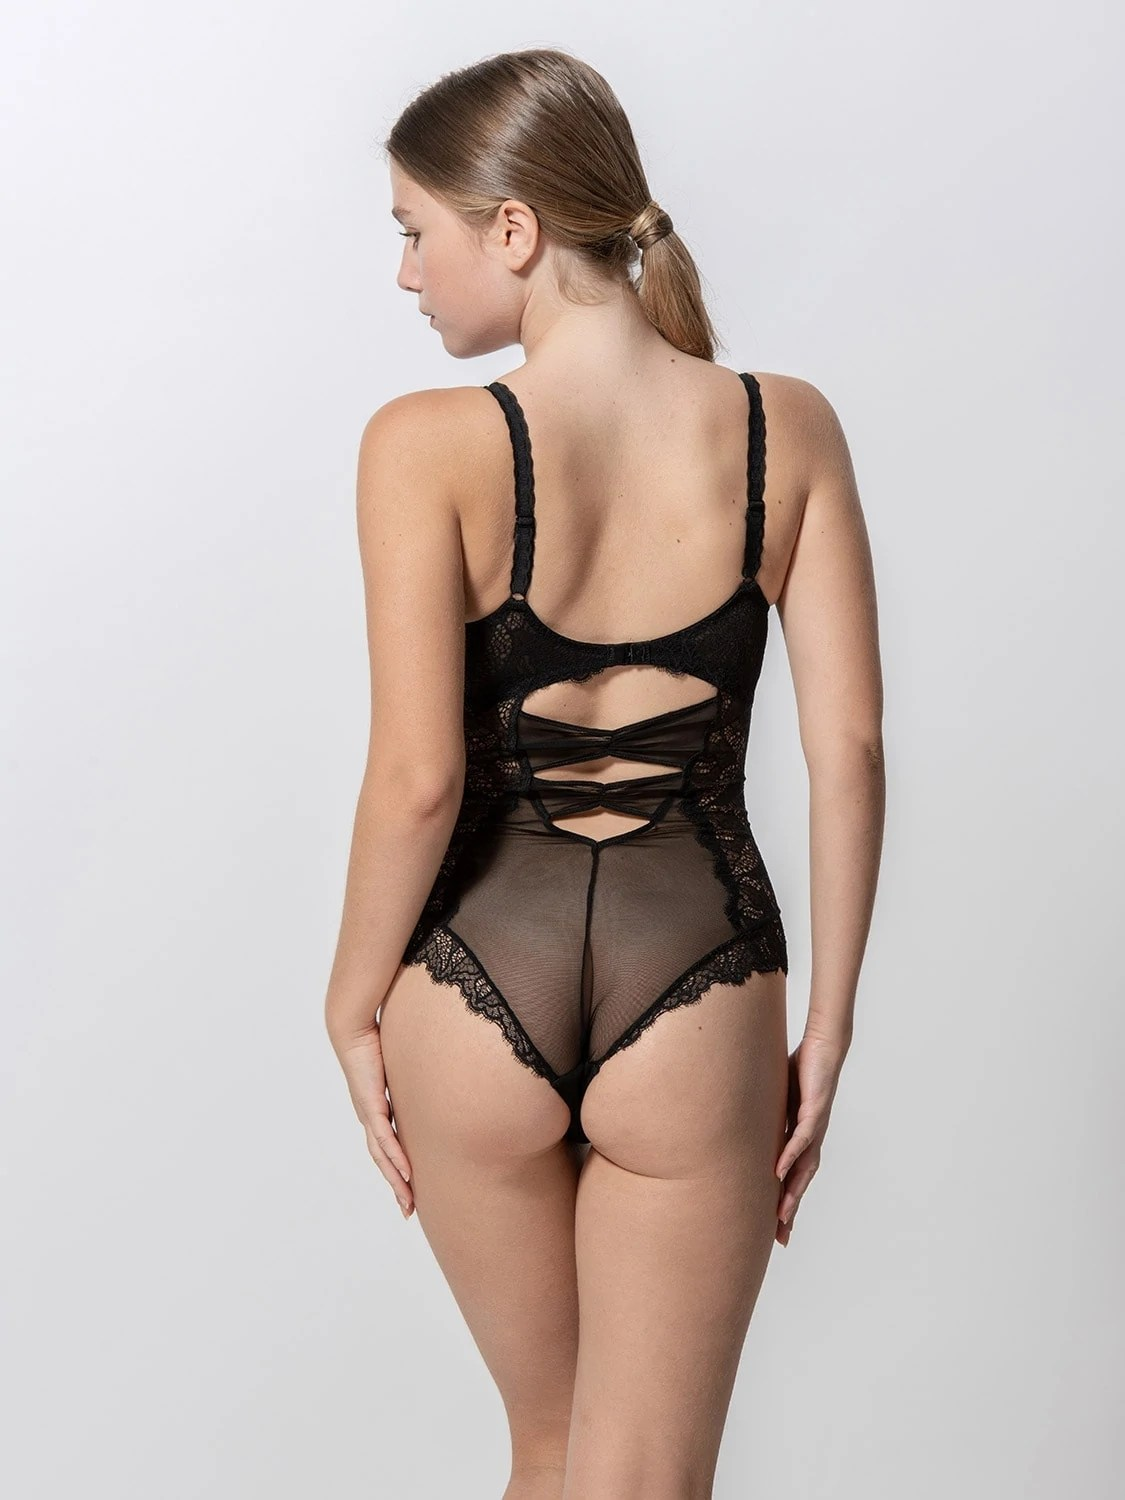 Orchidea 84090 body black back